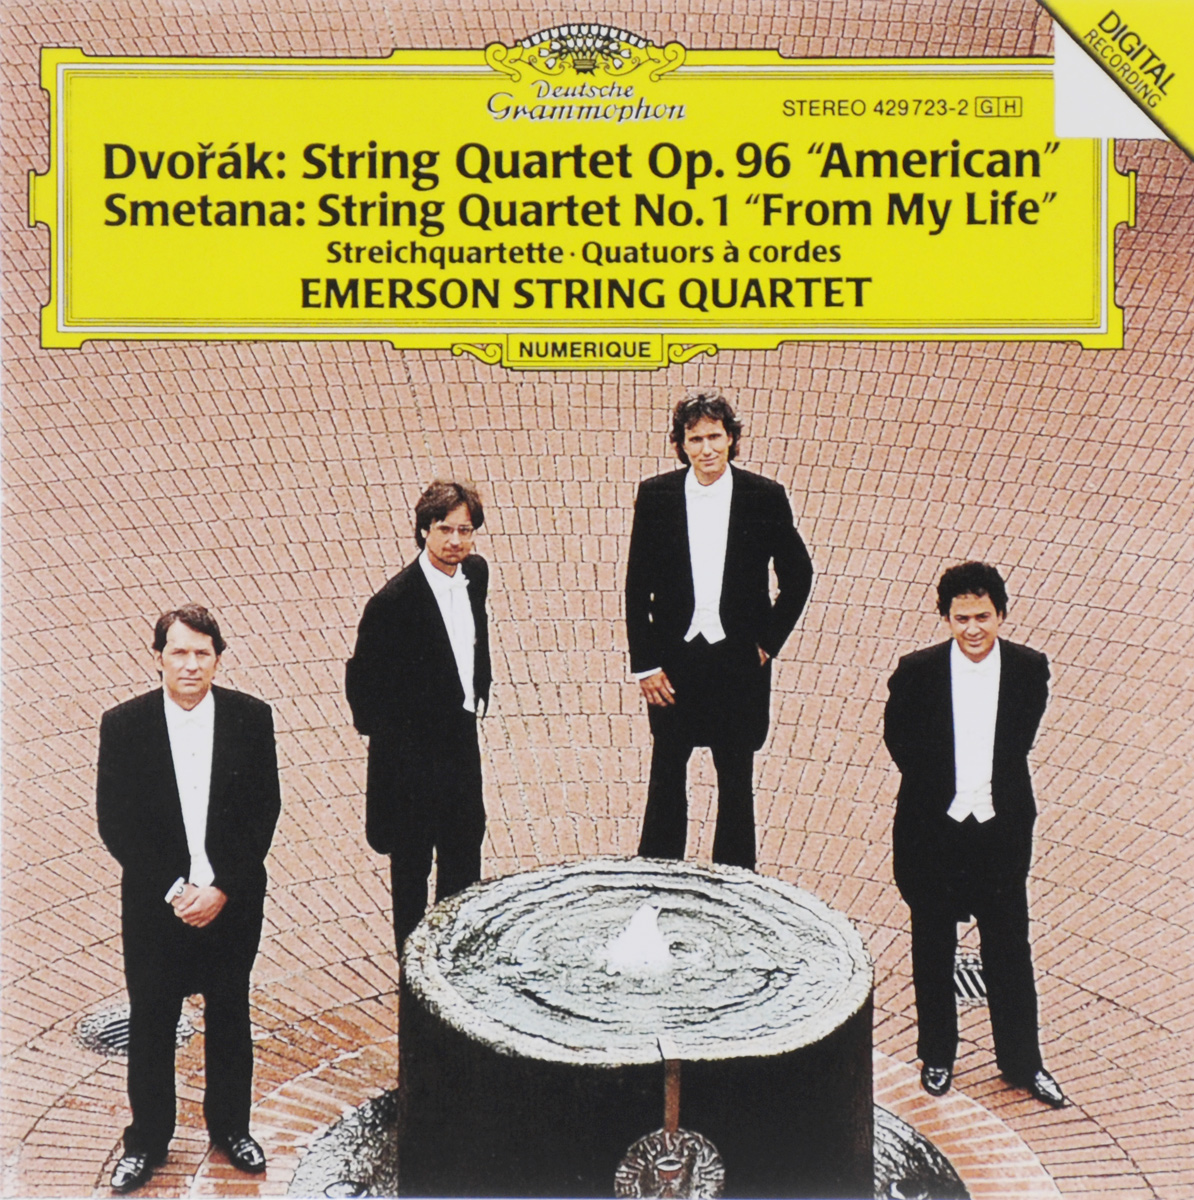 Emerson String Quartet Emerson String Quartet. String Quartet Op. 96 American / String Quartet No. 1 From My Life велосипед khs flite 750 2016